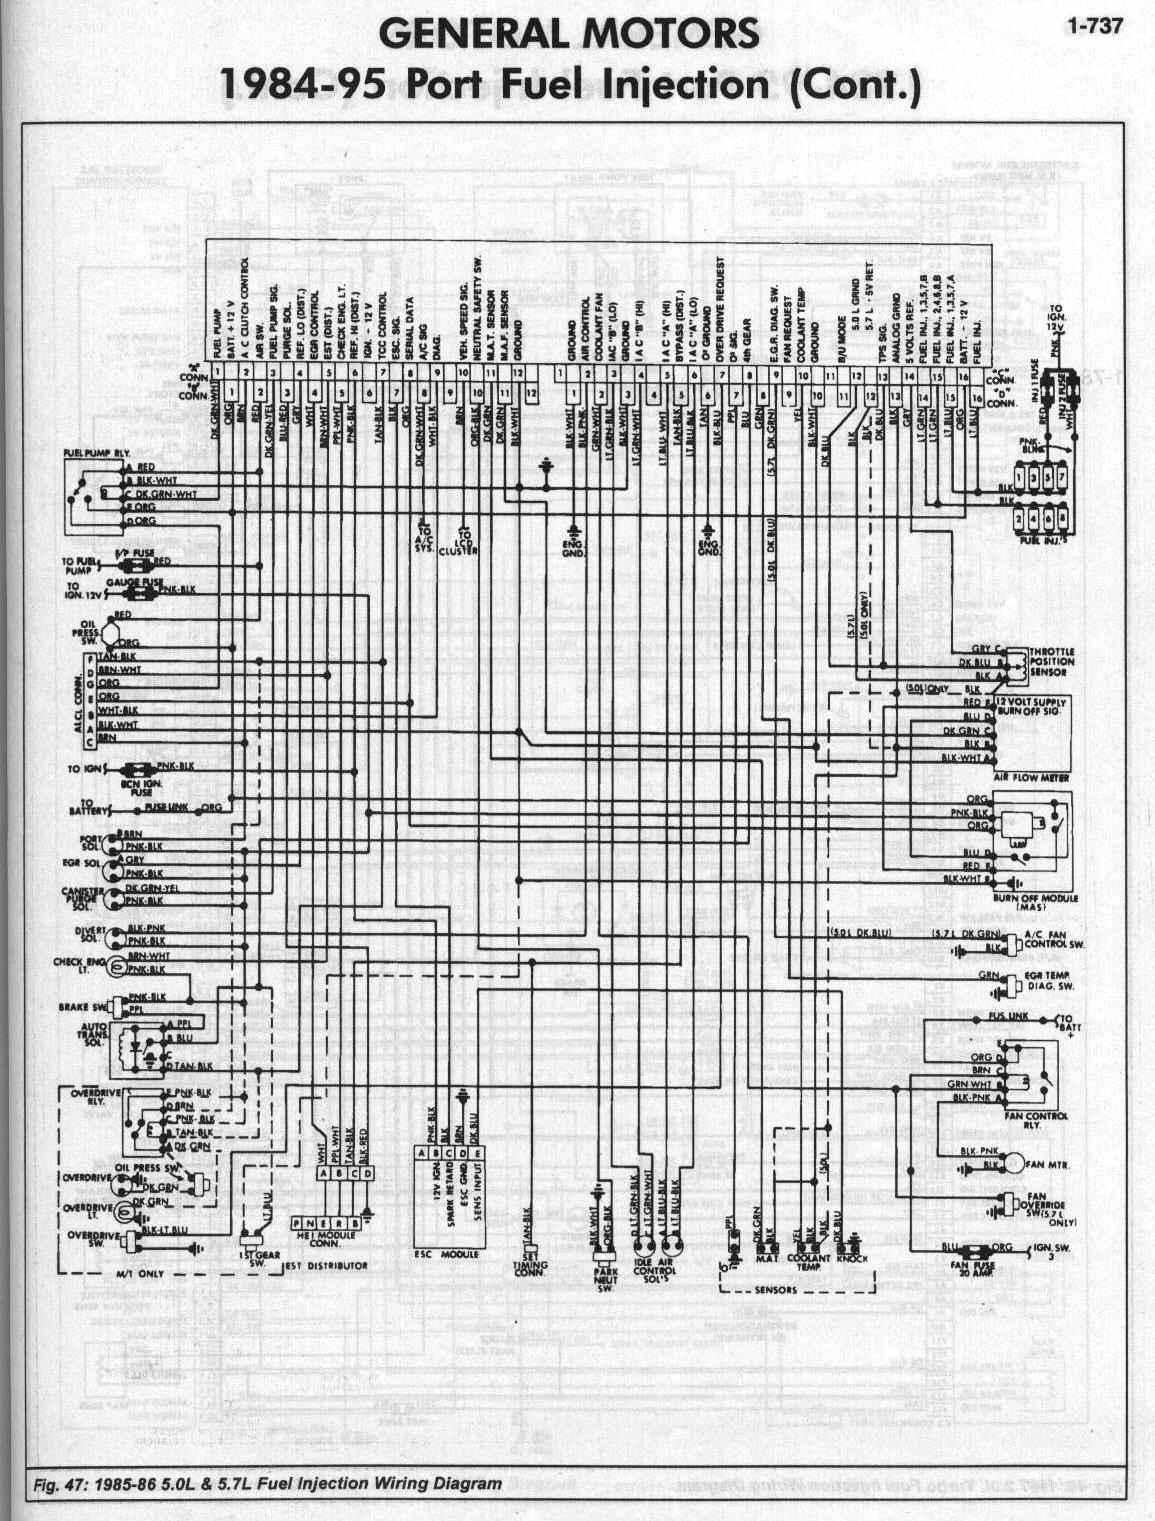 70 Camaro Z28 Wiring Diagram Library Schematic For 1970 Firebird My 85 And Eprom Project Corvette Wiper 86 Ecm